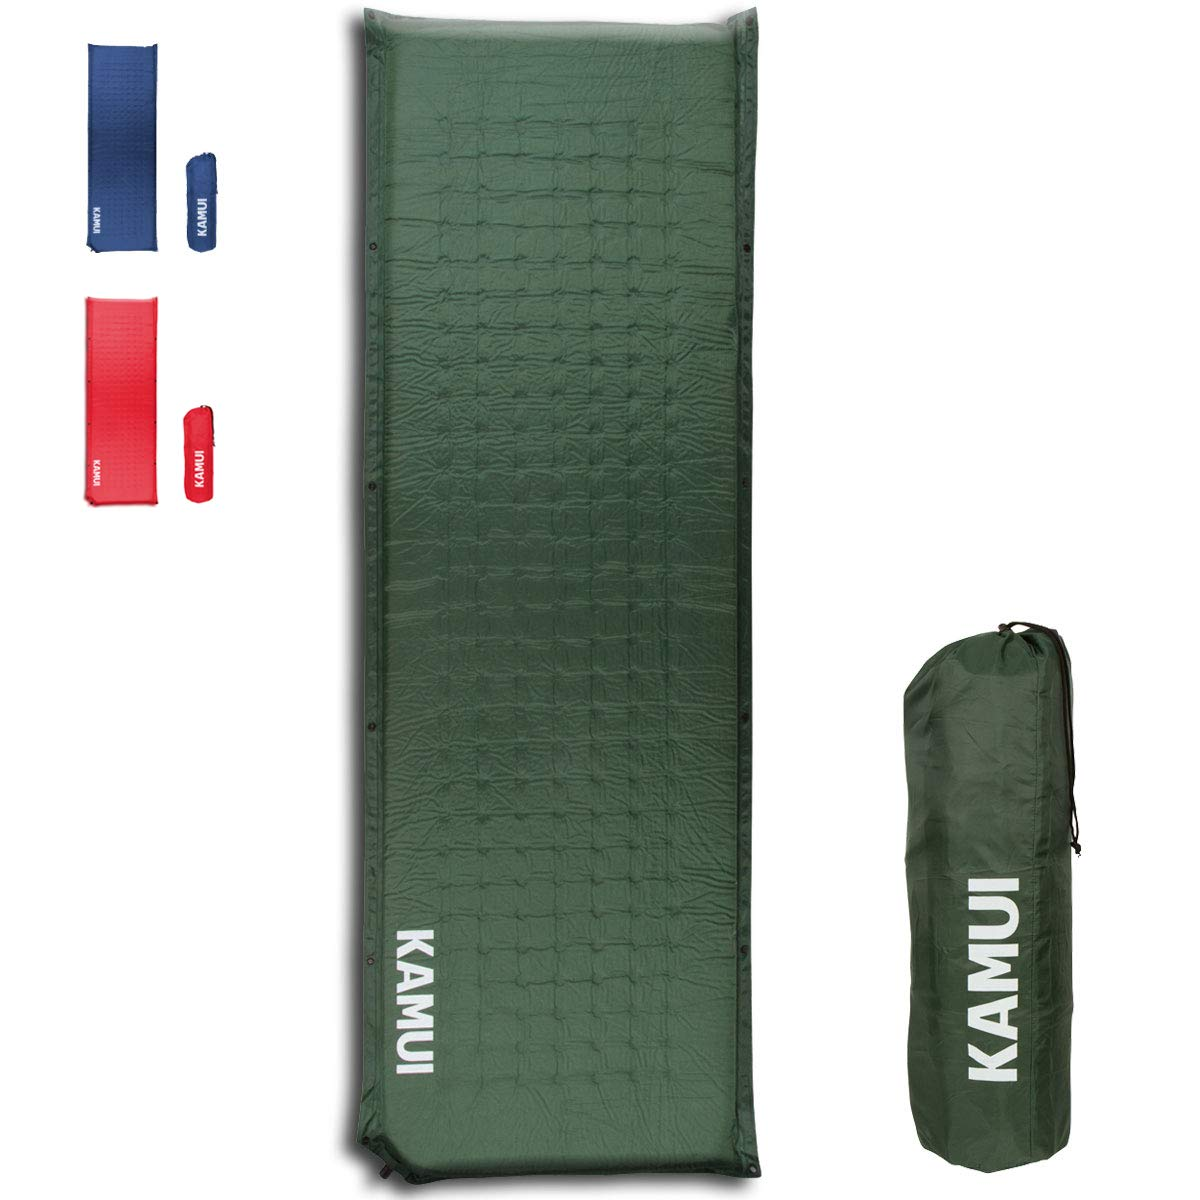 KAMUI Self Inflating Sleeping Pad - 2 Inch Thick Camping Pad Connectable with Multiple Mats for Tent and Family Camping (Green) by KAMUI